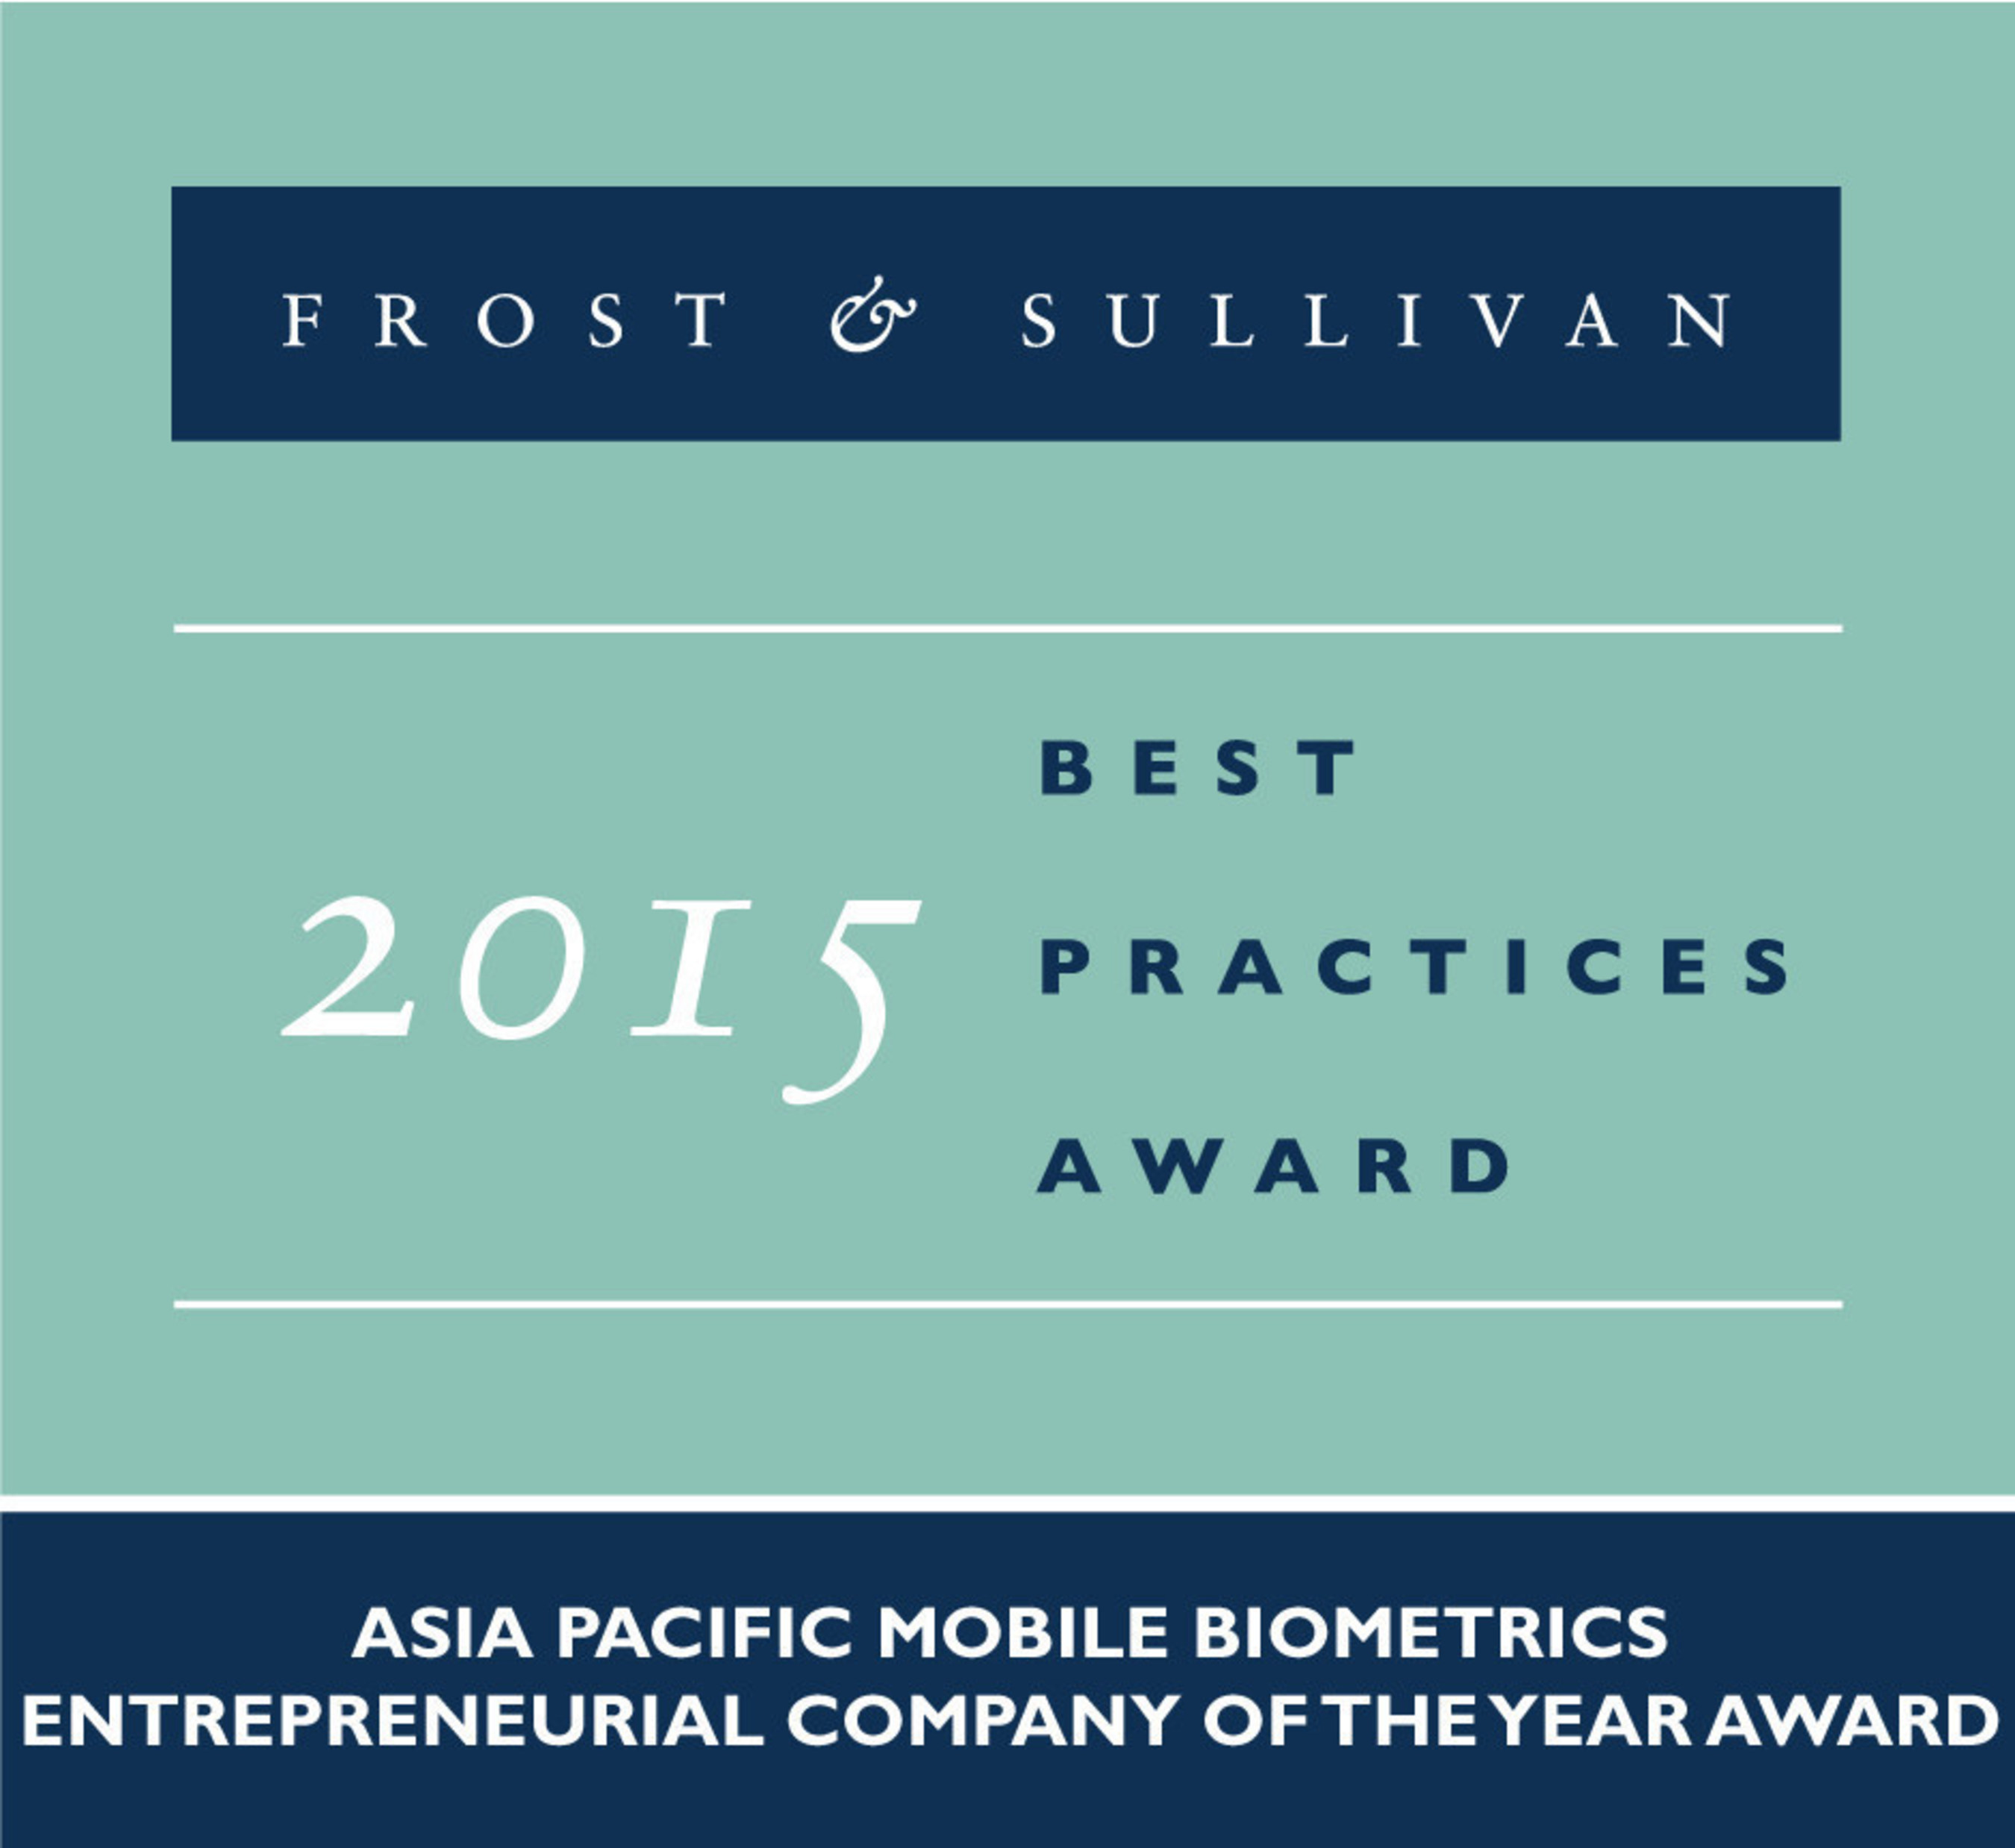 Frost & Sullivan Acknowledges the Distinctive Customer-focused Attributes of Credence ID's Mobile